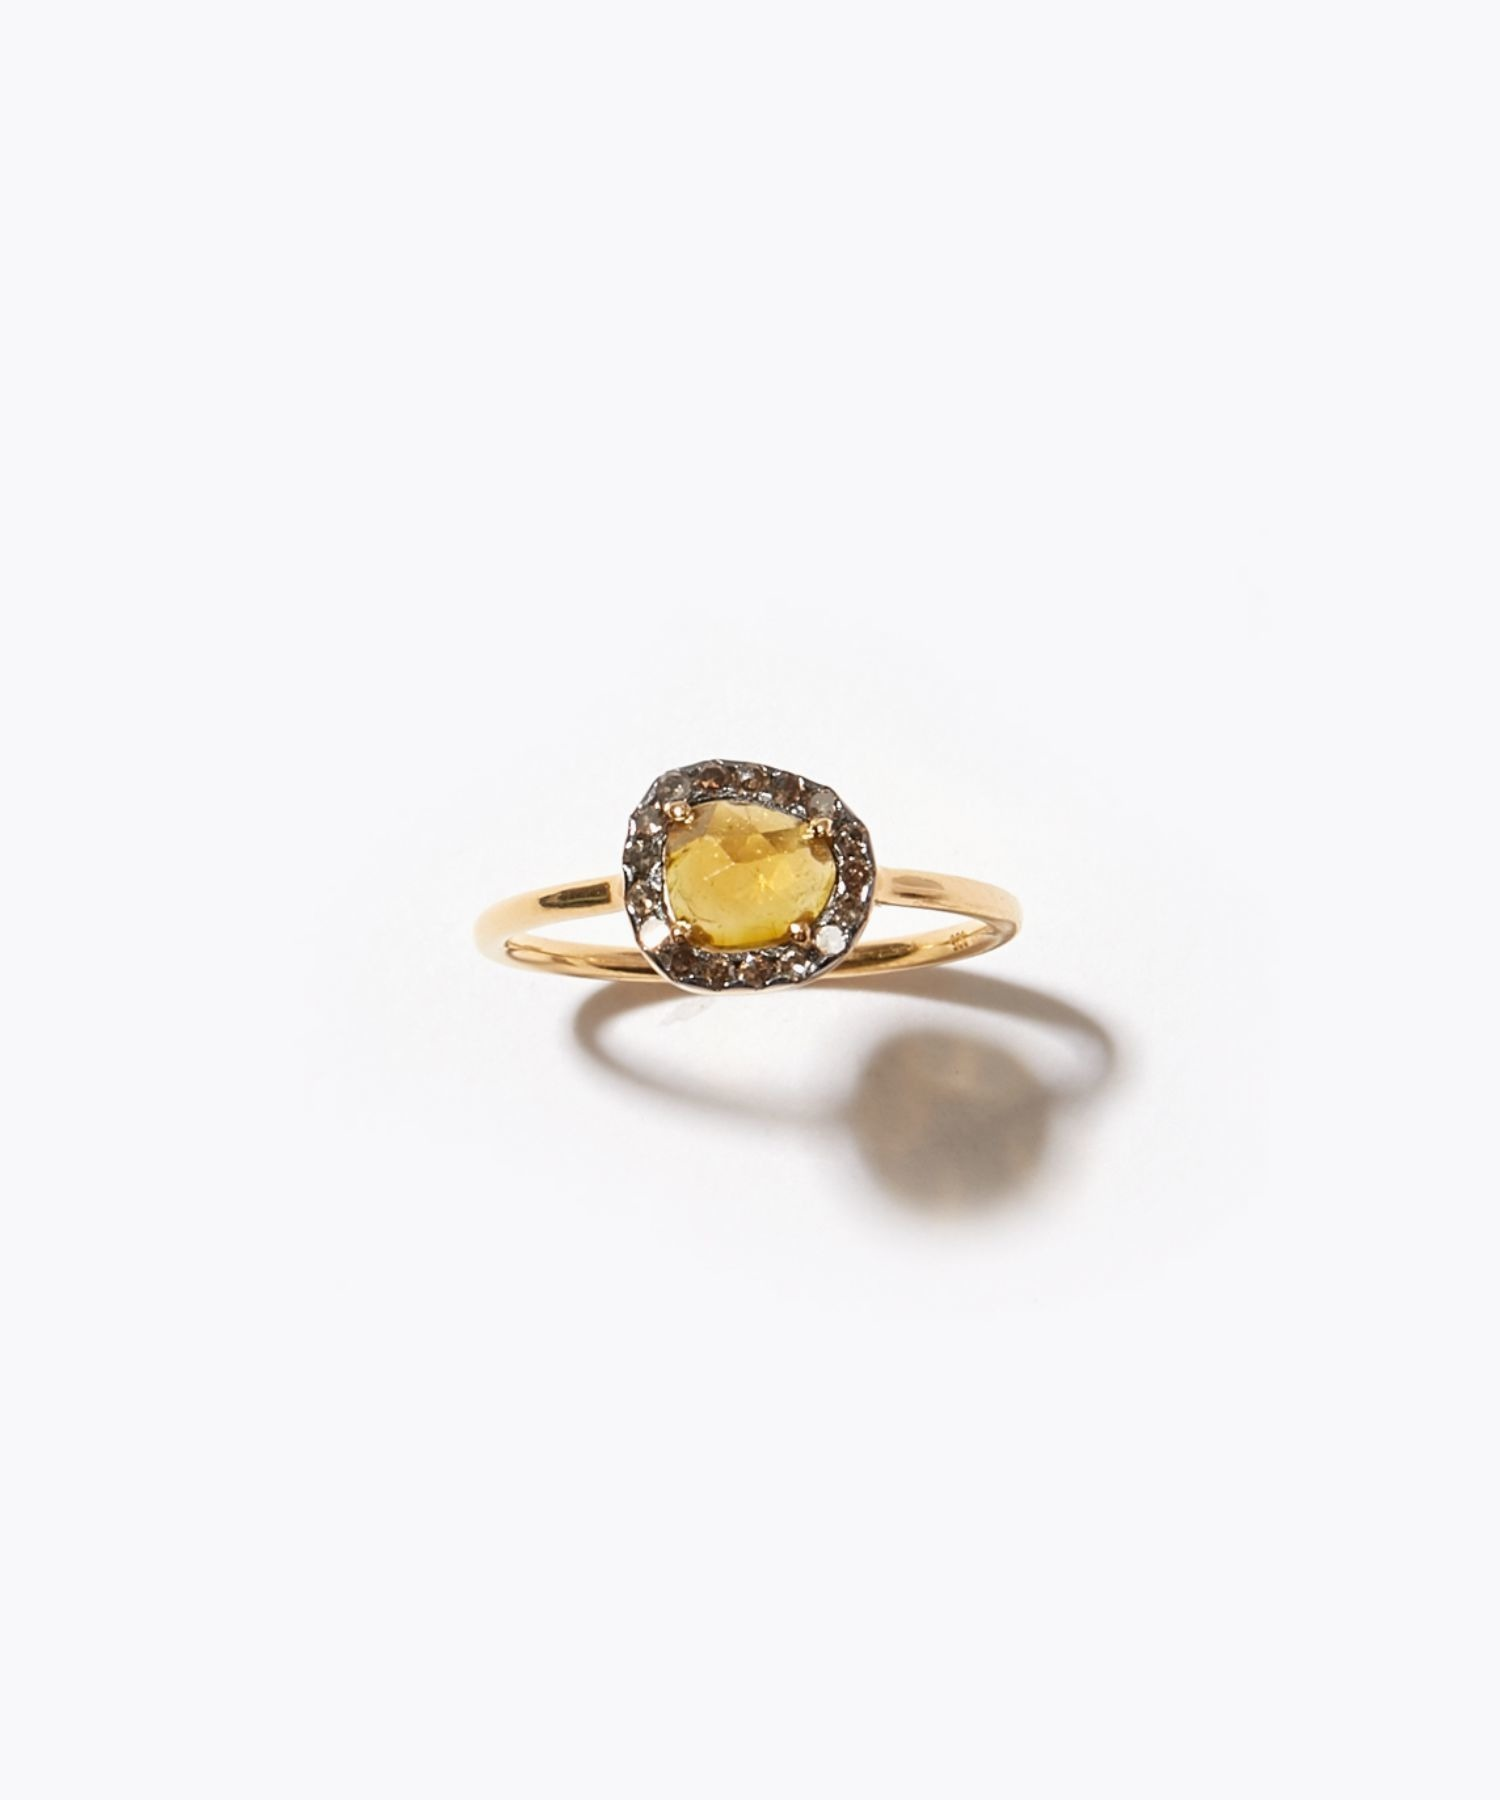 [elafonisi] extra small yellow tourmaline with pave diamonds ring